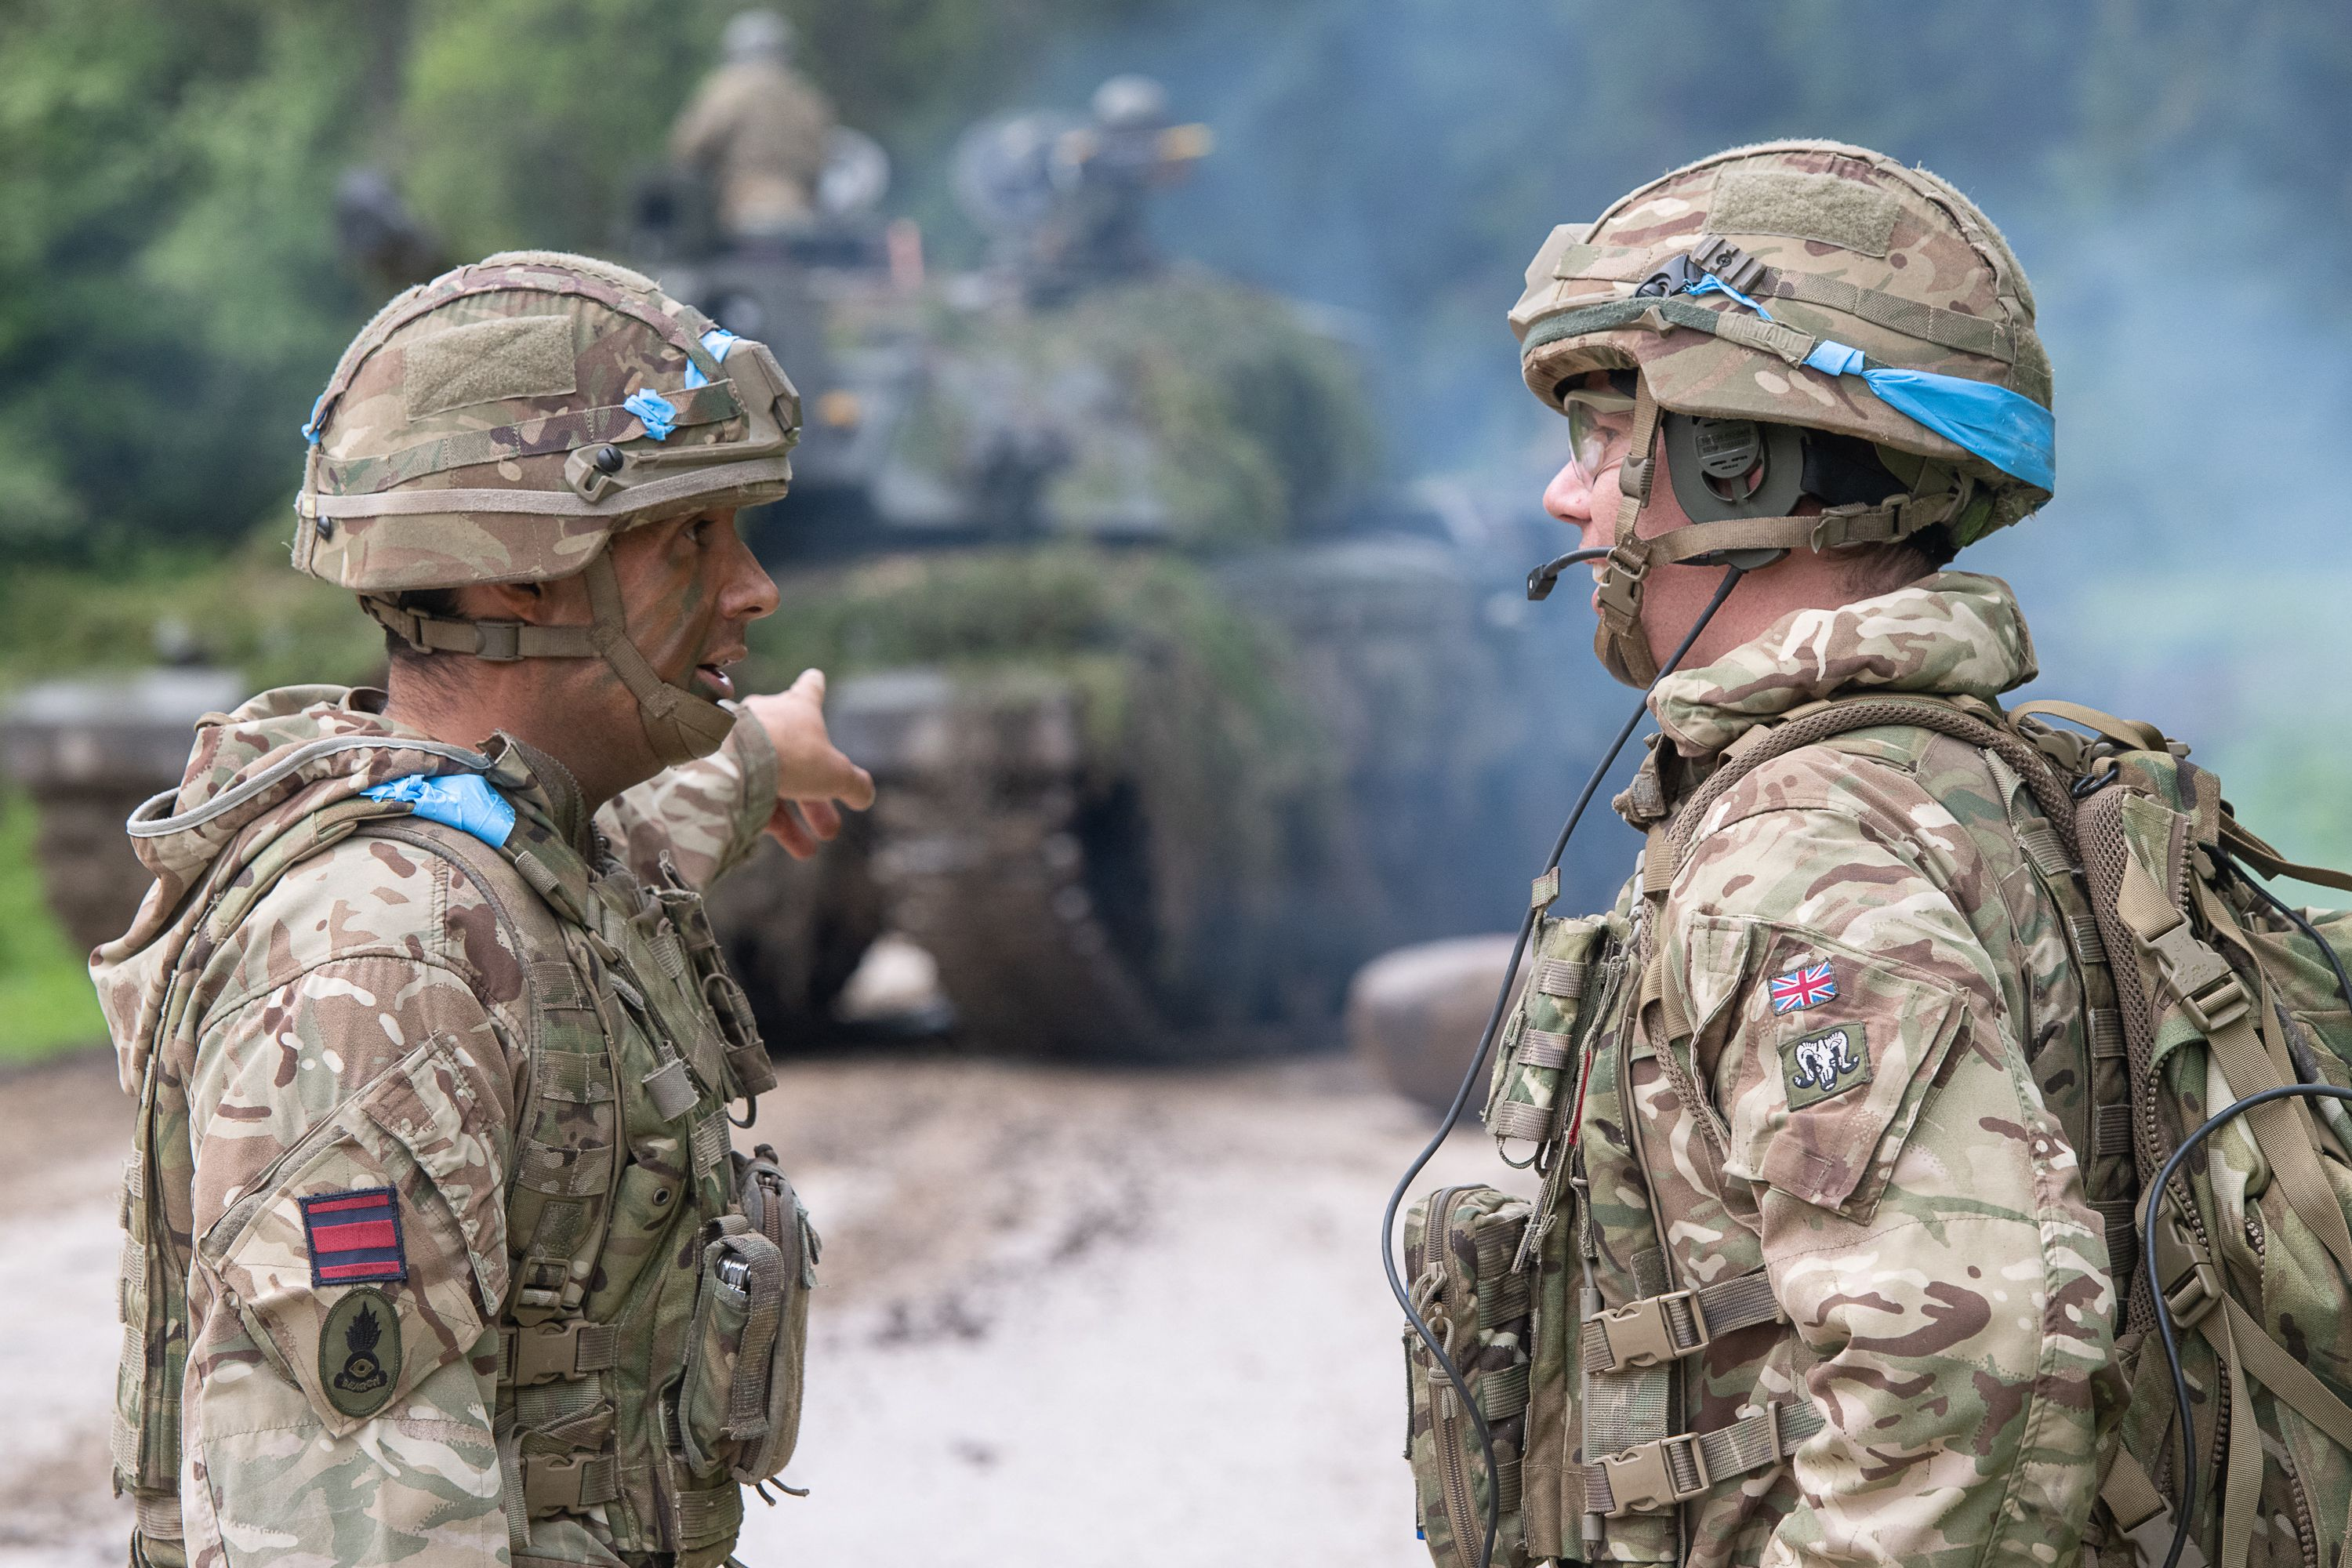 Soldiers take part in exercise Spring Storm, led by Estonia with the participation of NATO troops, on May 27, 2021, in Tapa, Estonia. (Raigo Pajula/AFP via Getty Images)